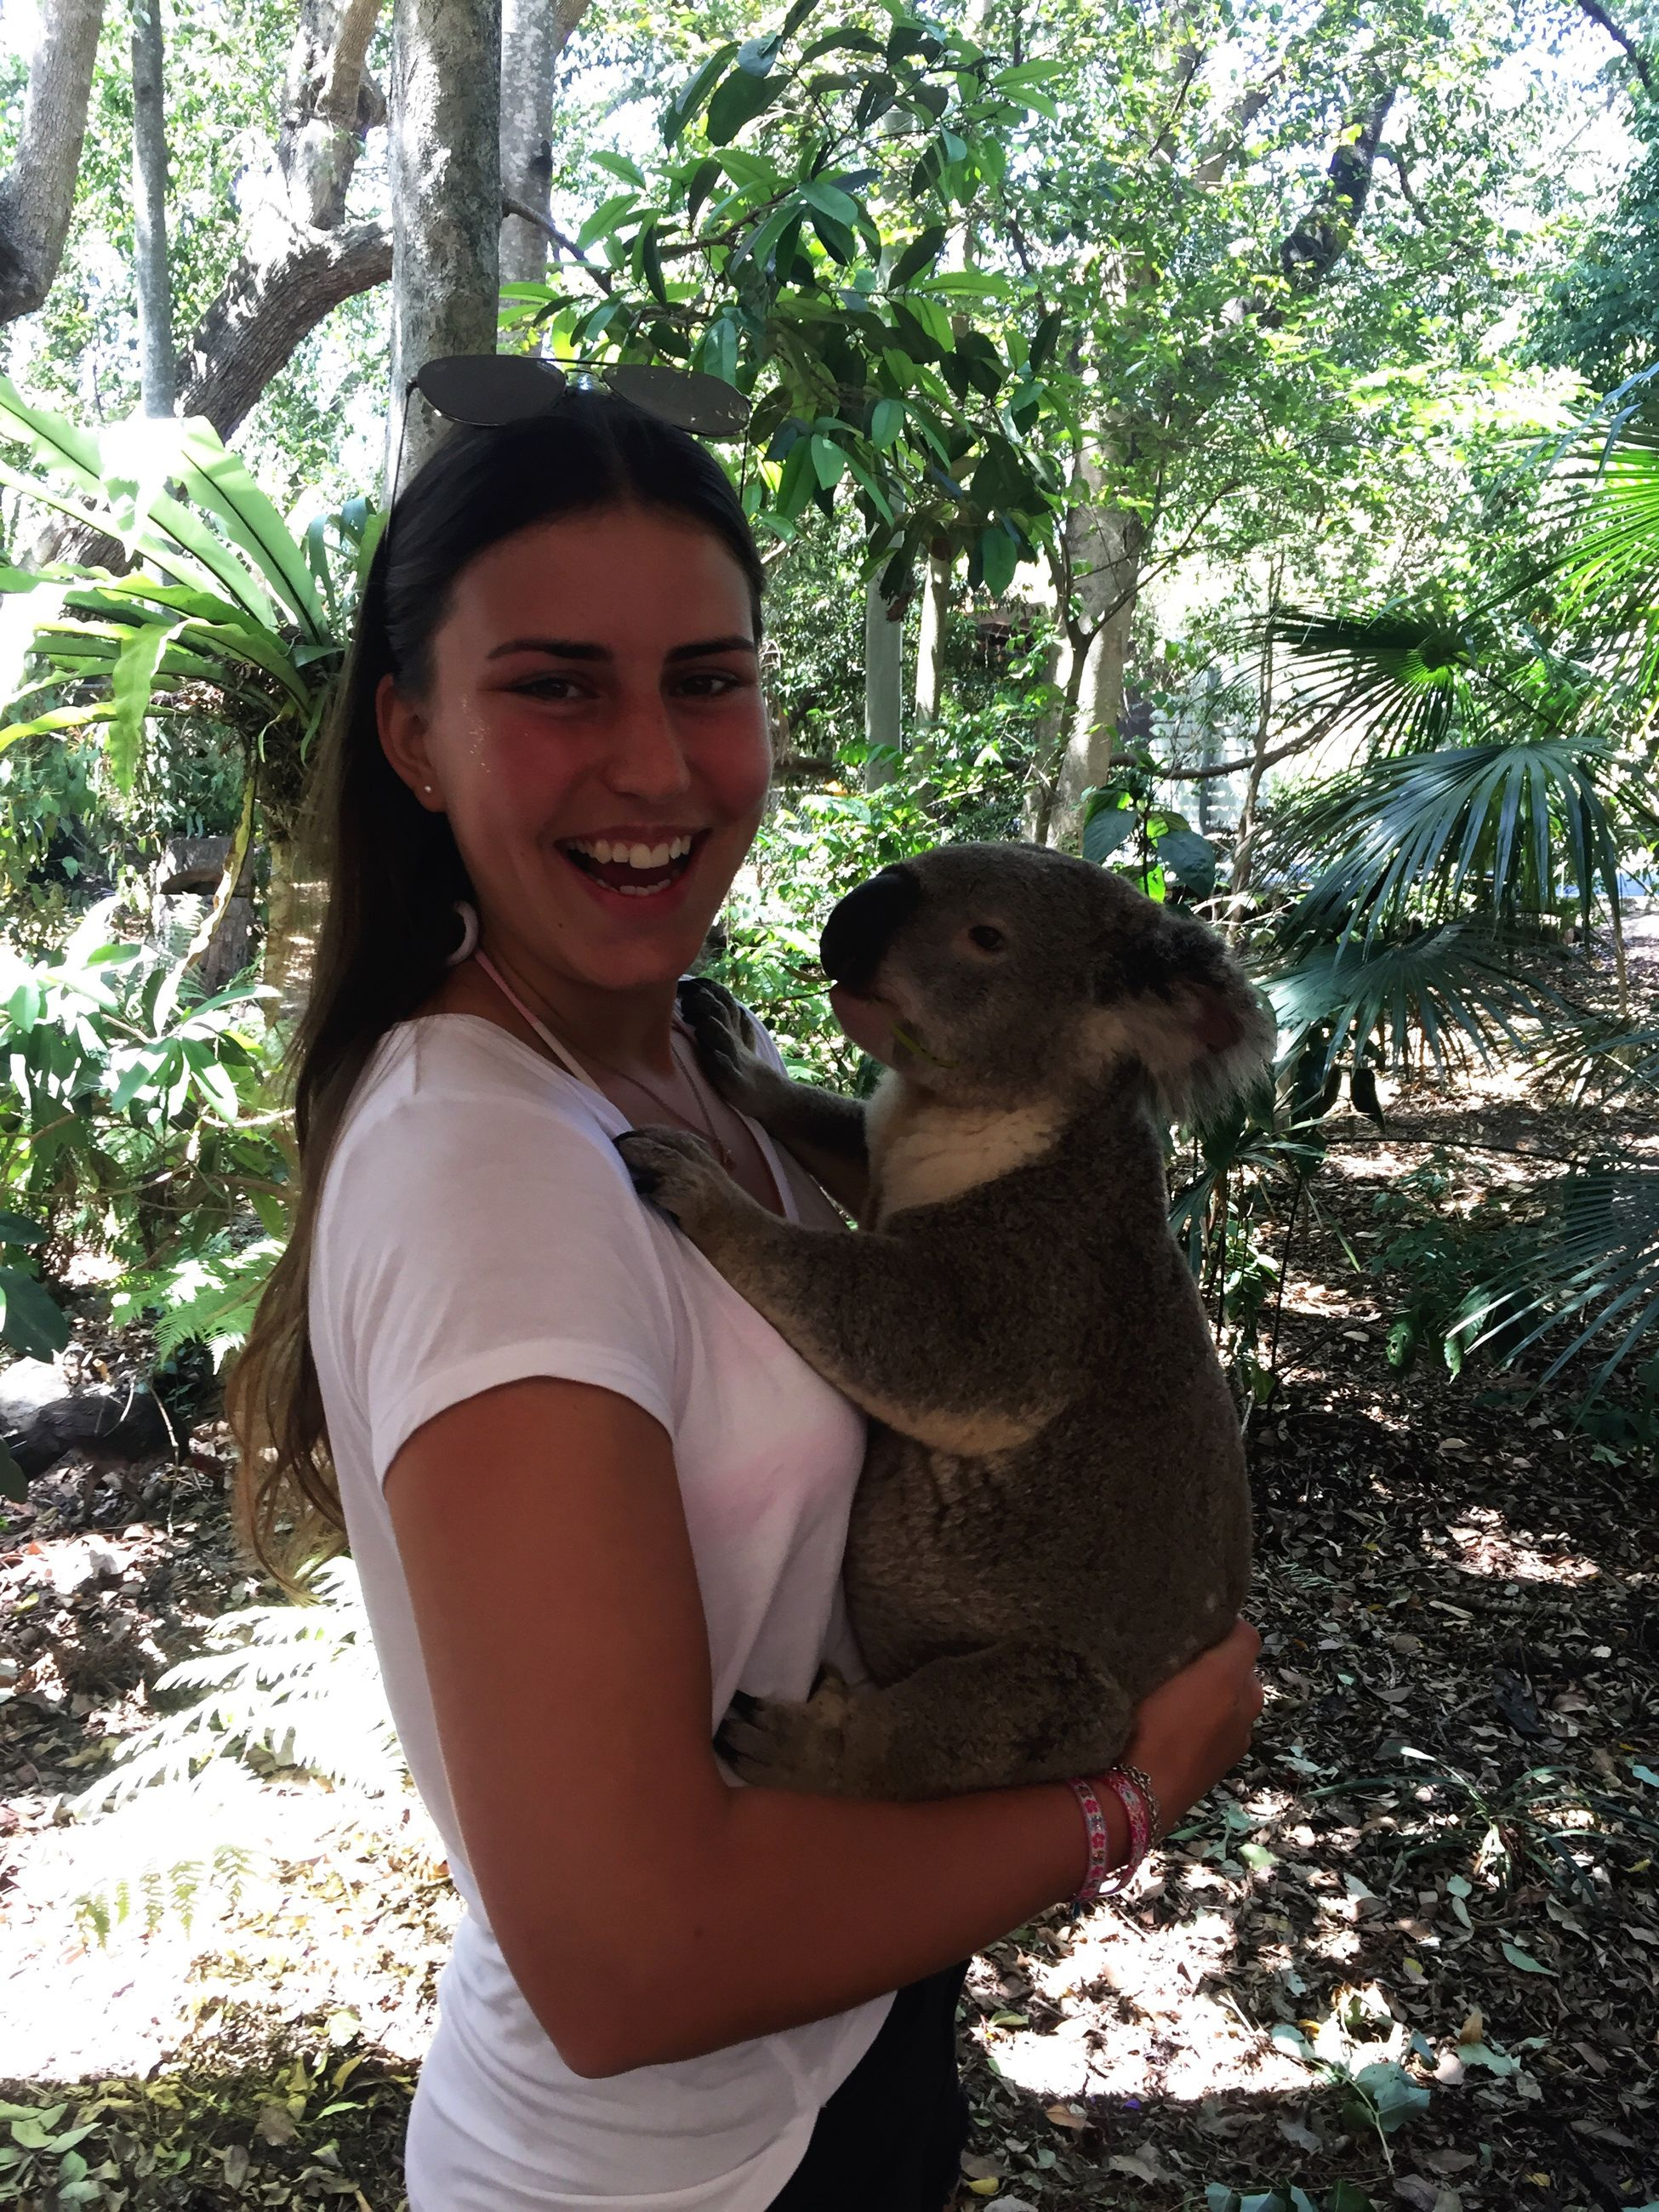 portrait, smiling, looking at camera, happiness, one animal, animal themes, tree, affectionate, embracing, love, pets, lifestyles, enjoyment, cheerful, young adult, one person, holding, friendship, sunlight, bonding, leisure activity, mammal, day, young women, care, nature, hugging, outdoors, adults only, koala, people, adult